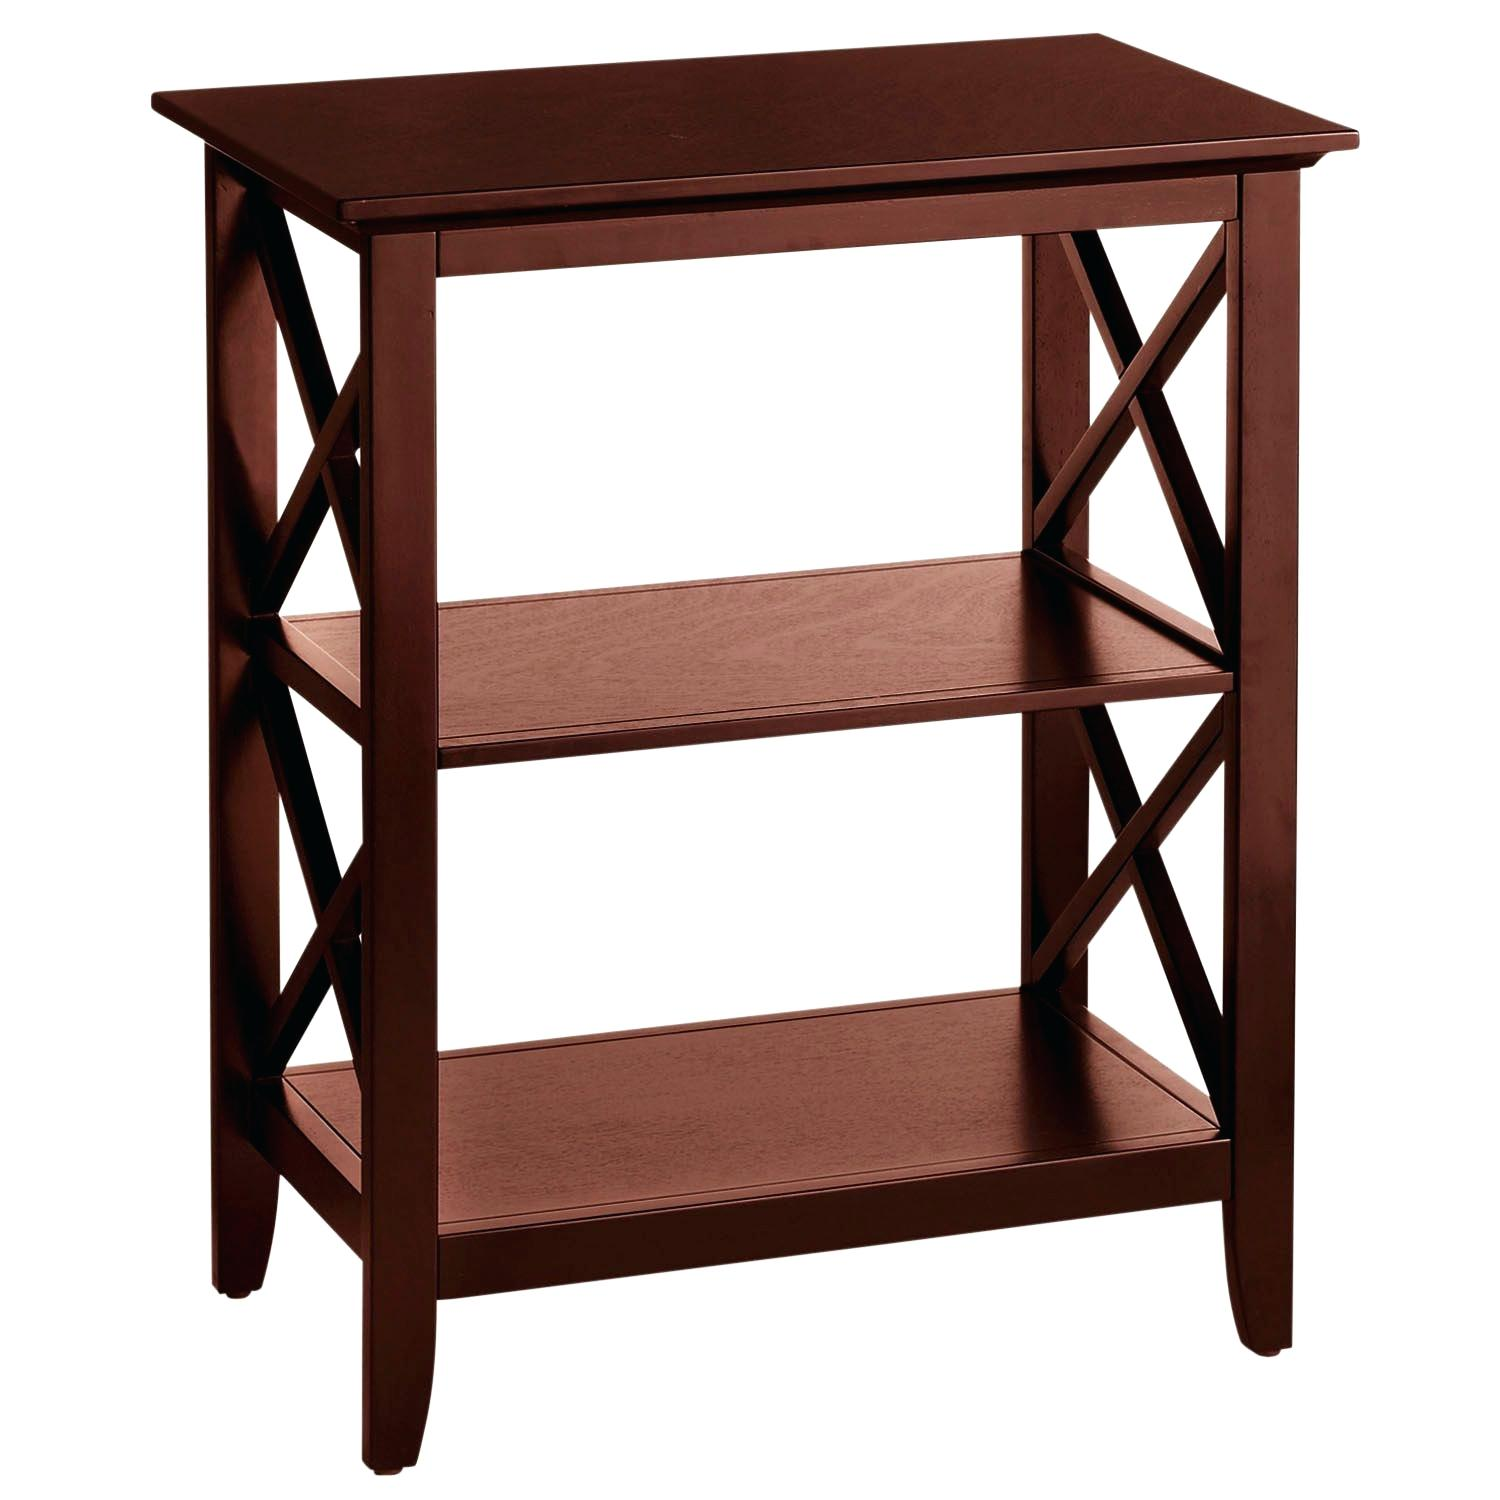 espresso accent table dietingguide club tall metal glass bengal manor mango wood twist penny furniture outdoor wicker covers pine side modern nic medium oak end tables drawer